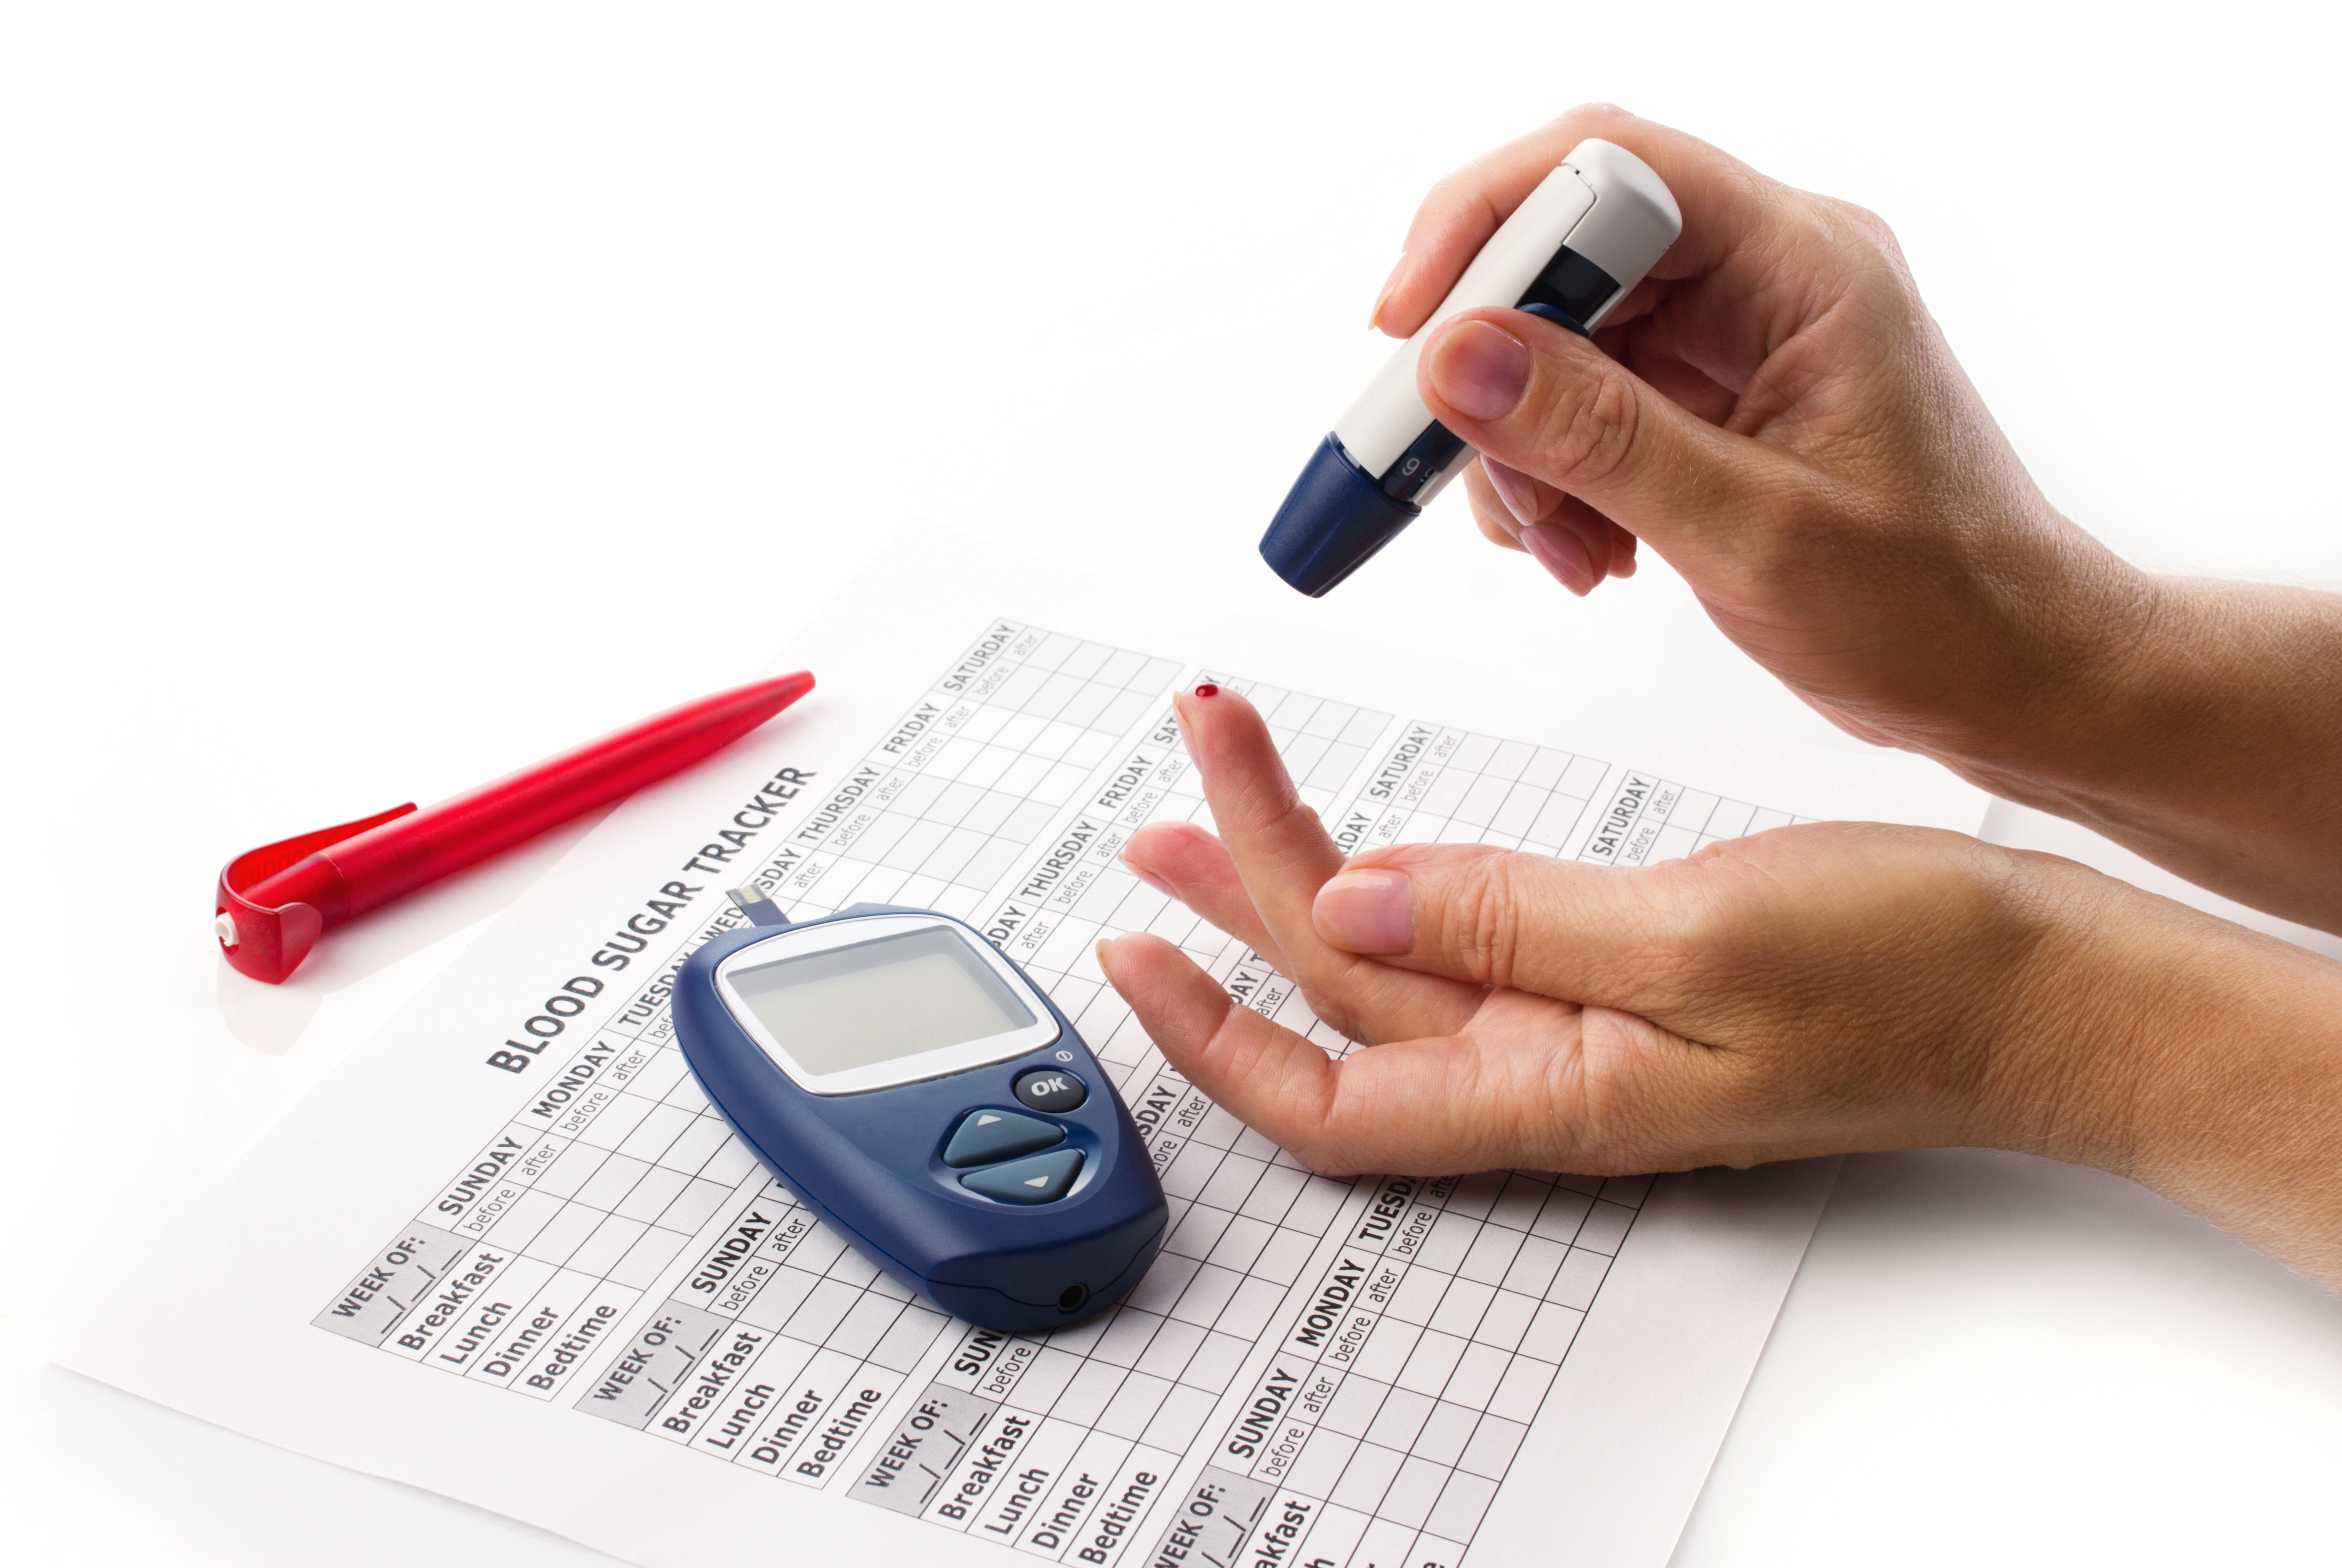 Why Suffer From Diabetes?